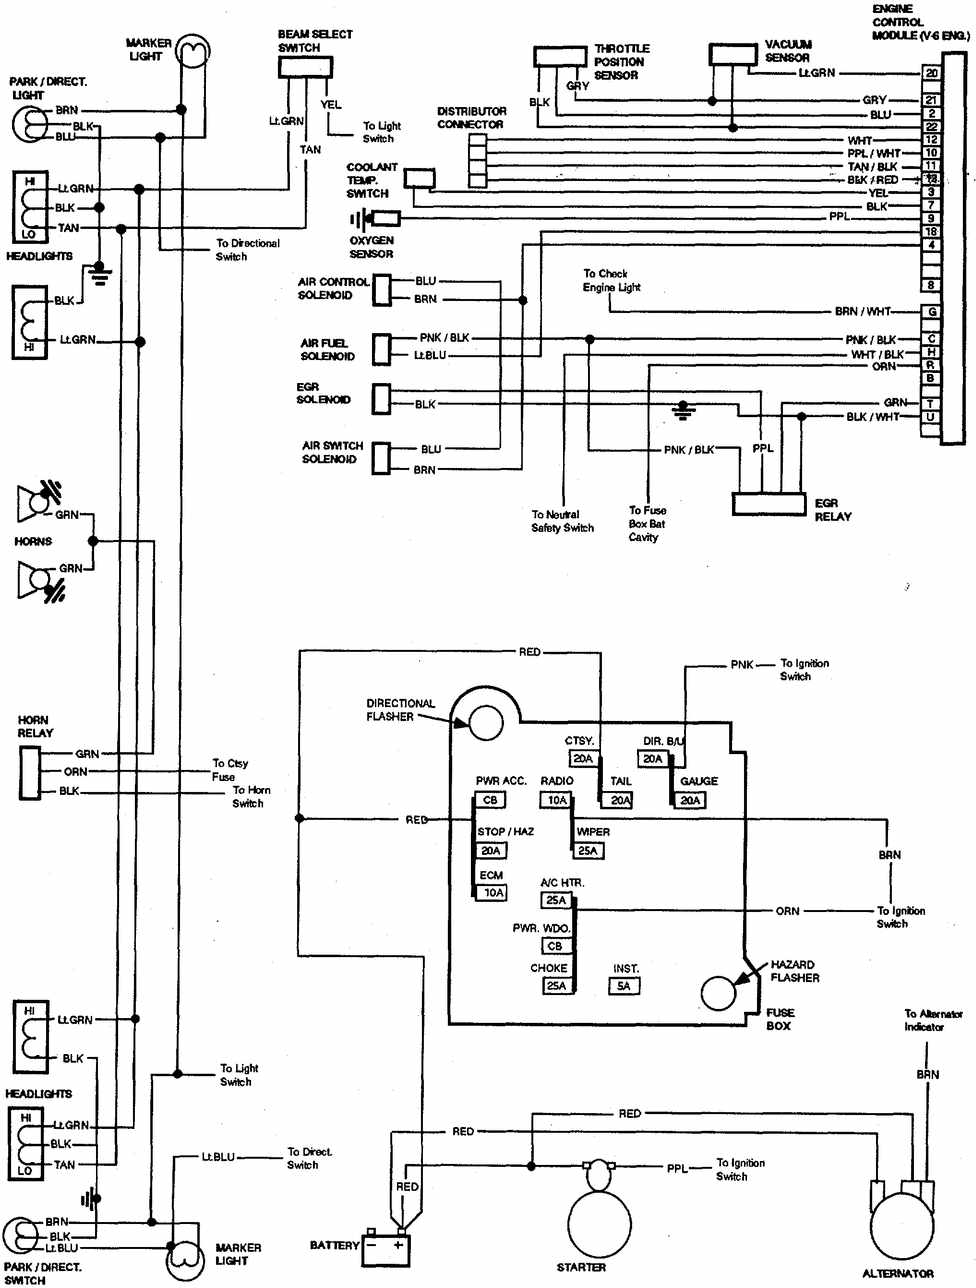 84 chevy k10 engine wiring chevrolet v8 trucks 1981 1987 electrical wiring diagram #4